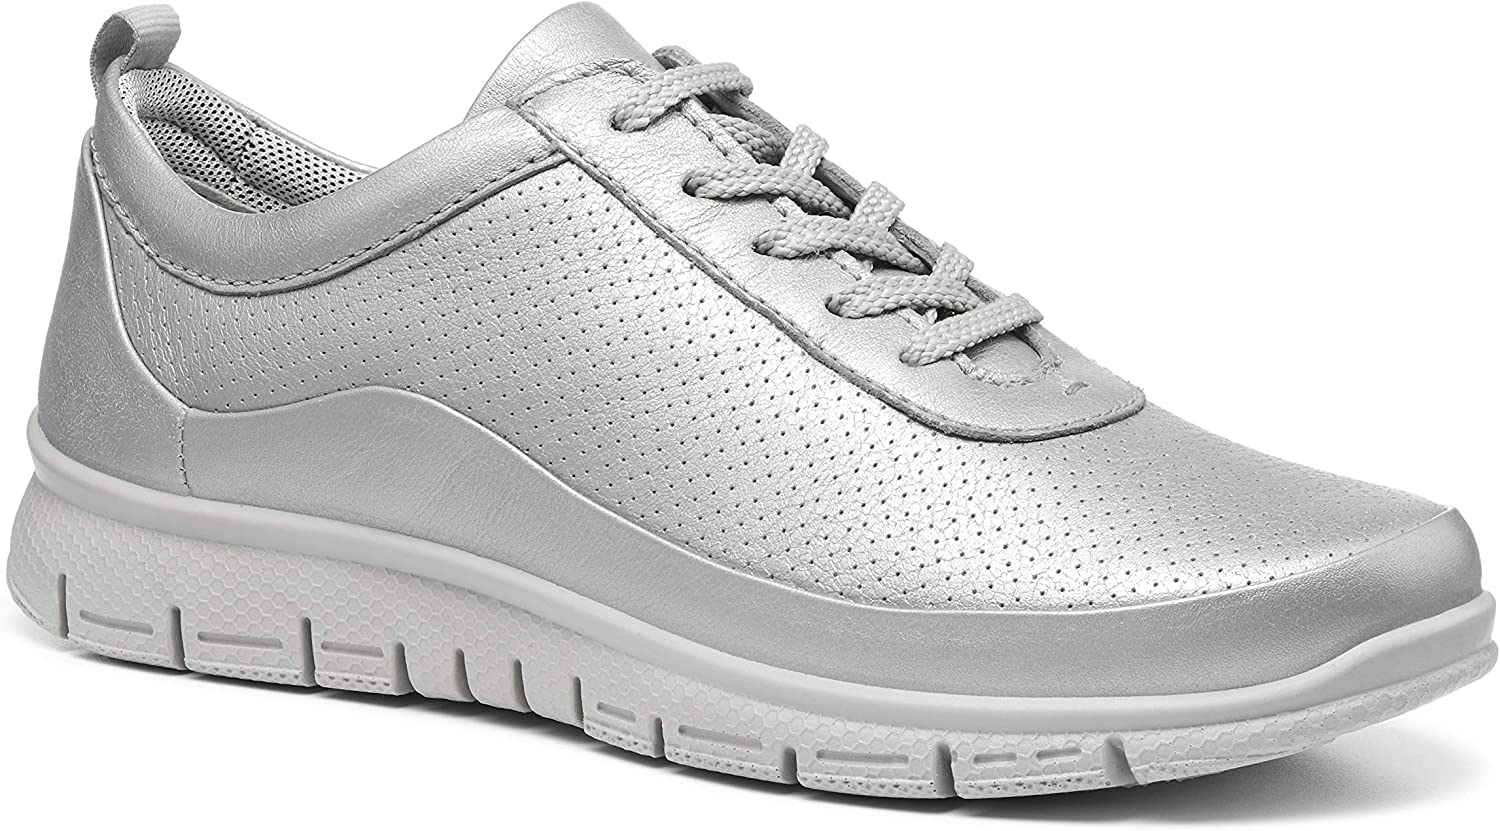 Hotter Max 58% 2021 spring and summer new OFF Women's Low-Top Trainers Sneaker